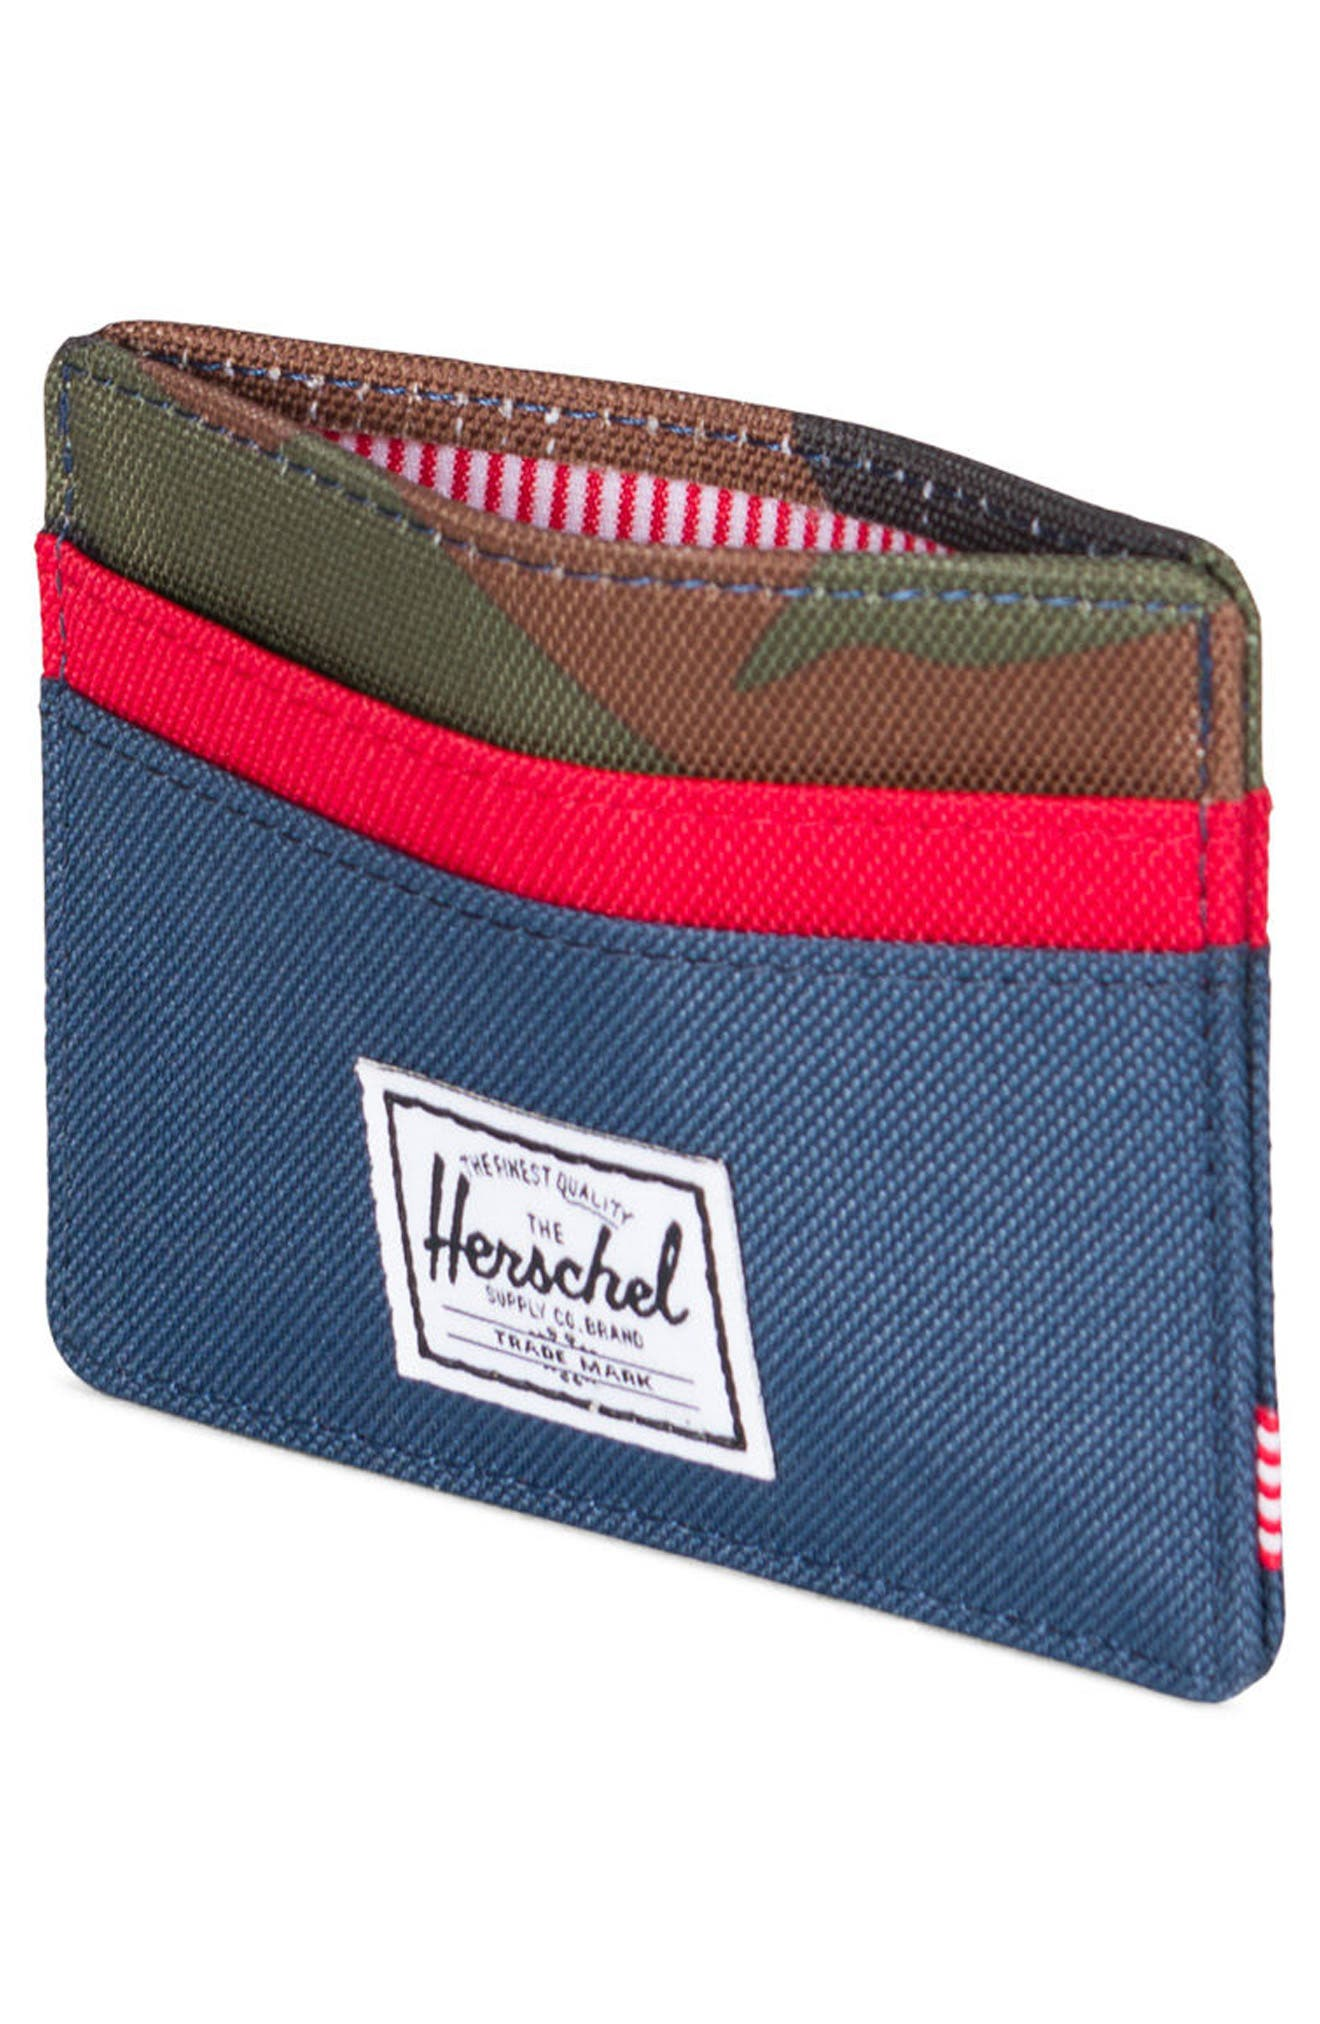 Charlie RFID Card Case,                             Alternate thumbnail 2, color,                             NAVY/ RED/ CAMO